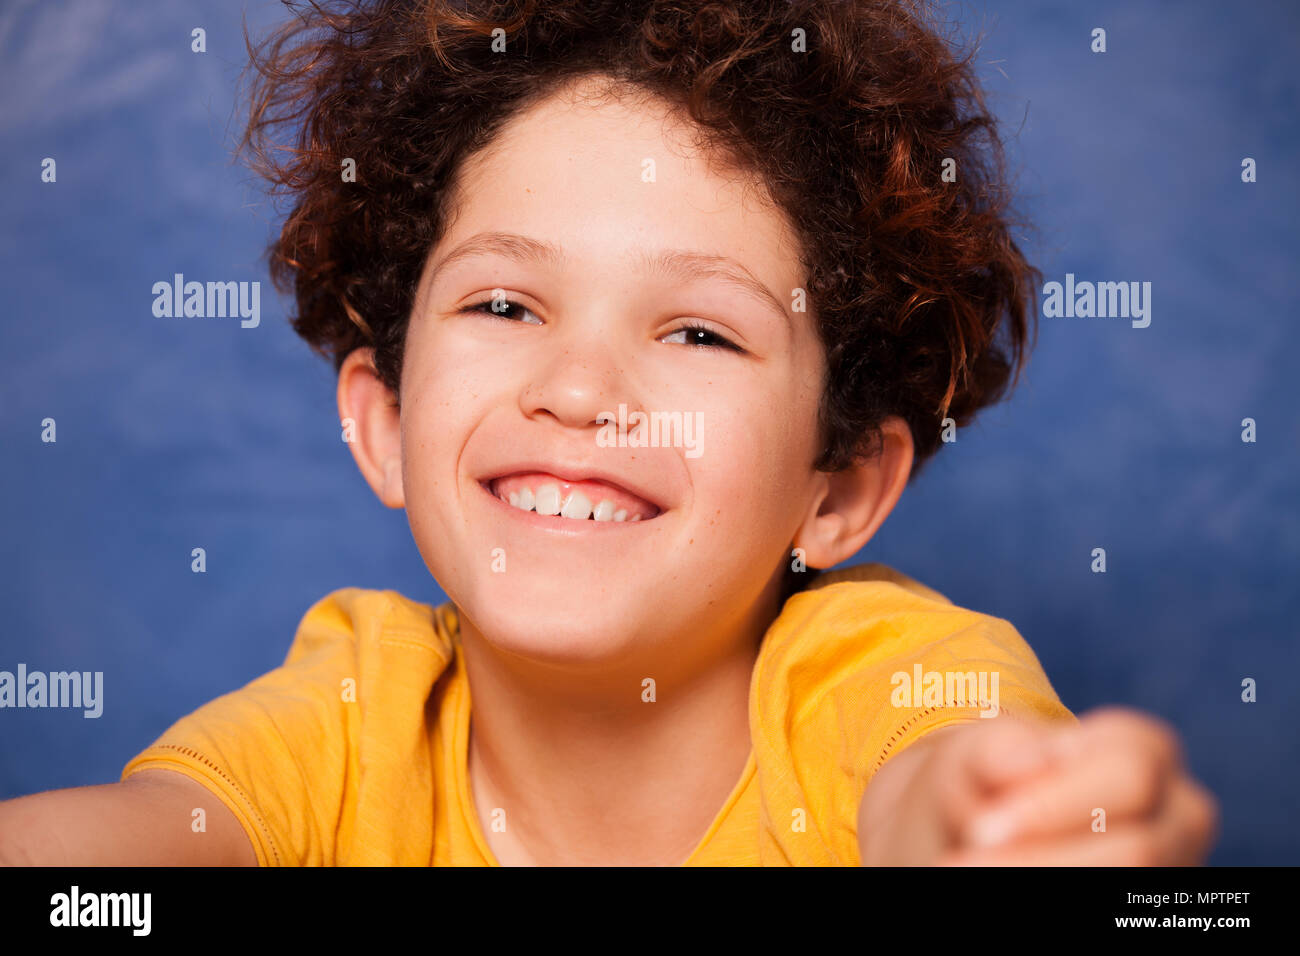 Close-up portrait of preteen curly boy smiling and looking at camera - Stock Image